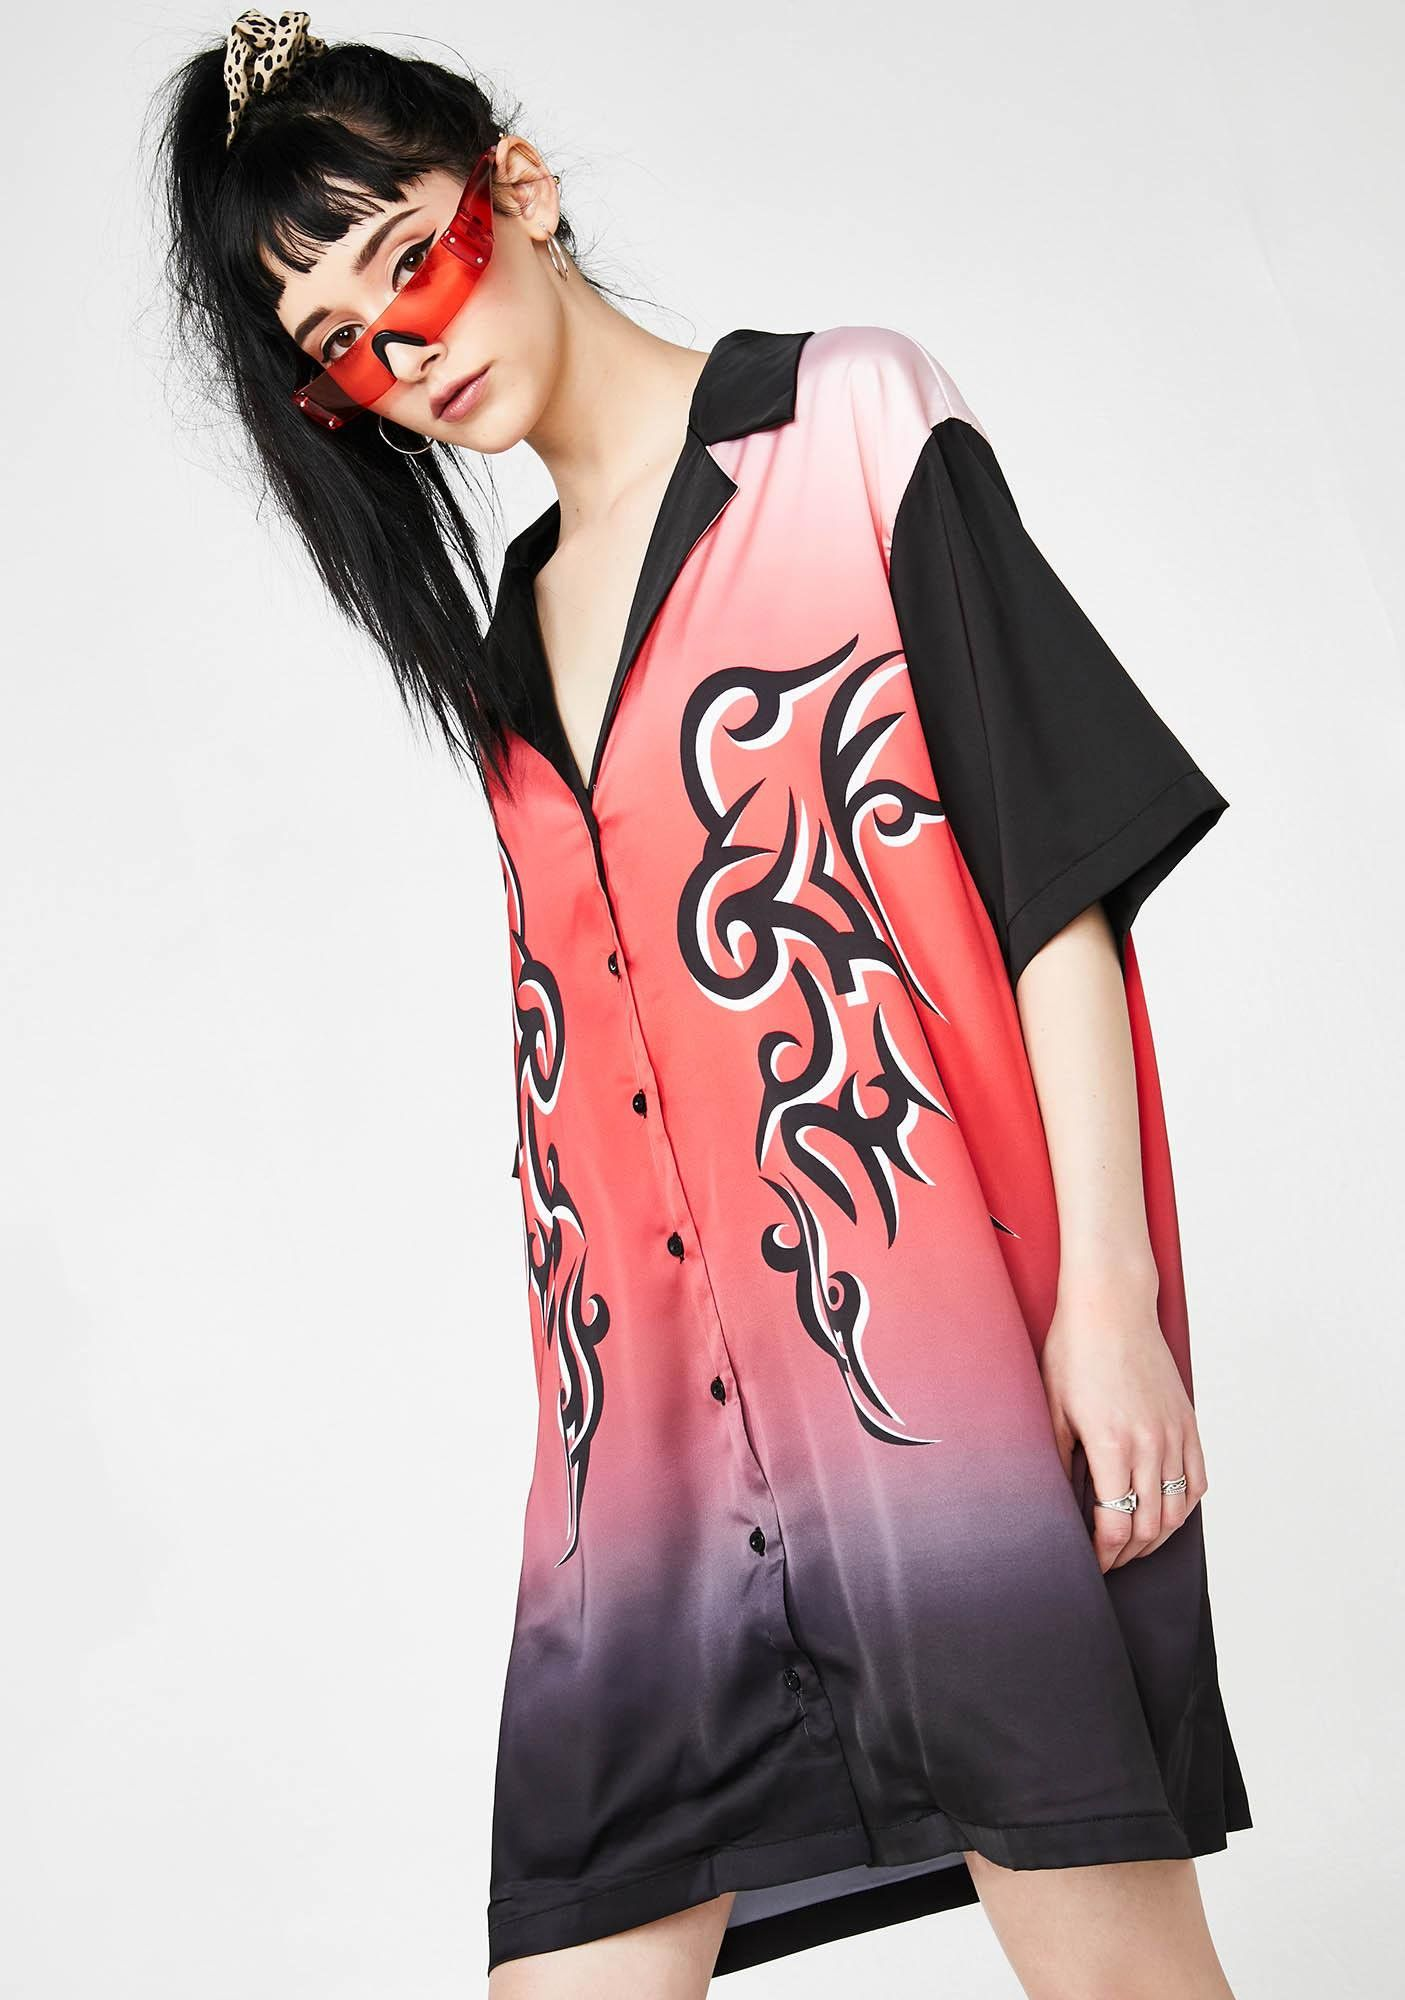 Tribe Dress   Neon dresses, Online clothing boutiques, Fashion